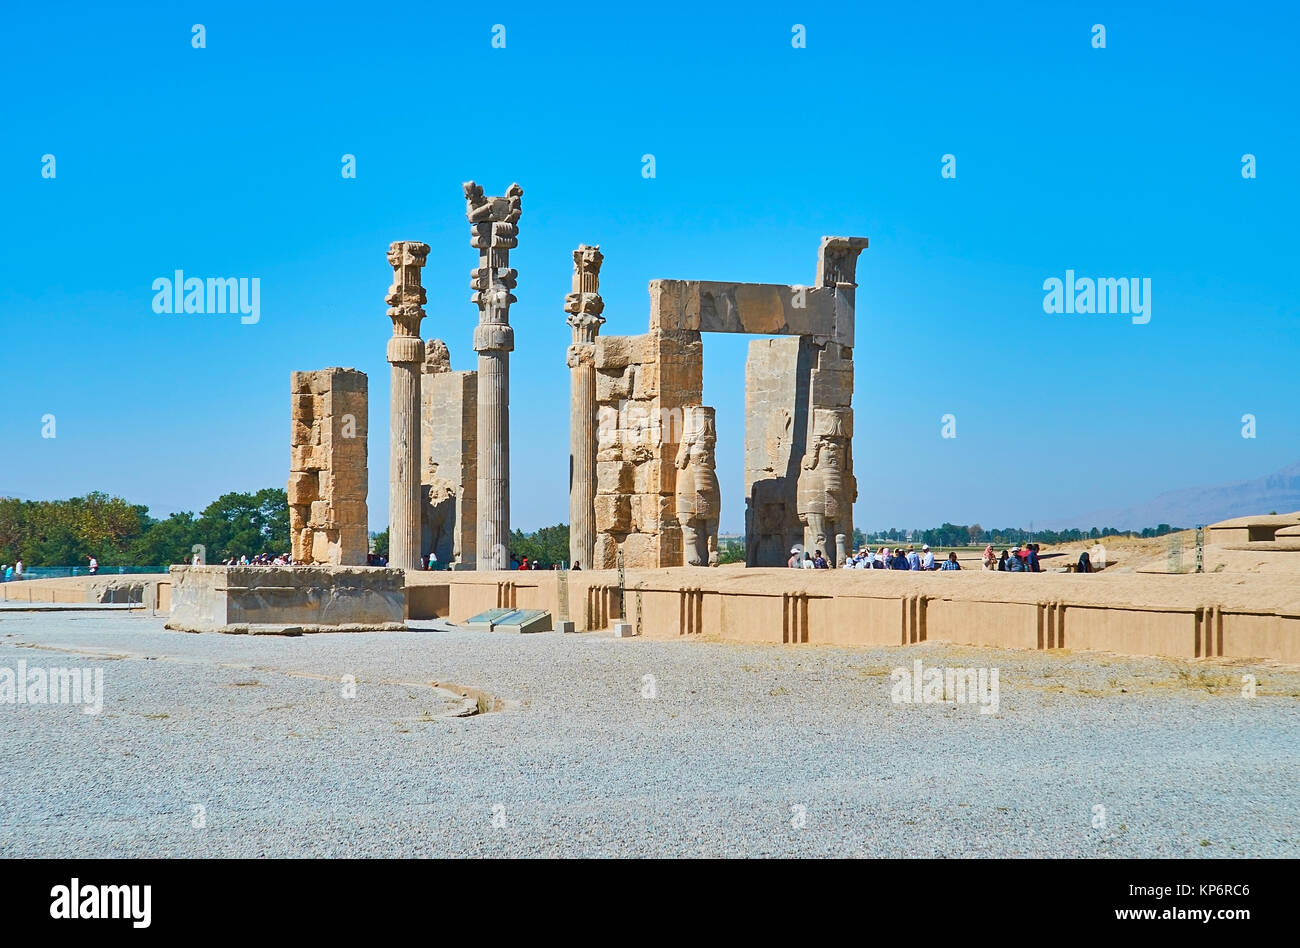 PERSEPOLIS, IRAN - OCTOBER 13, 2017: The ruins of Xerxes (All nations) Gate are one of the most famous landmarks Stock Photo